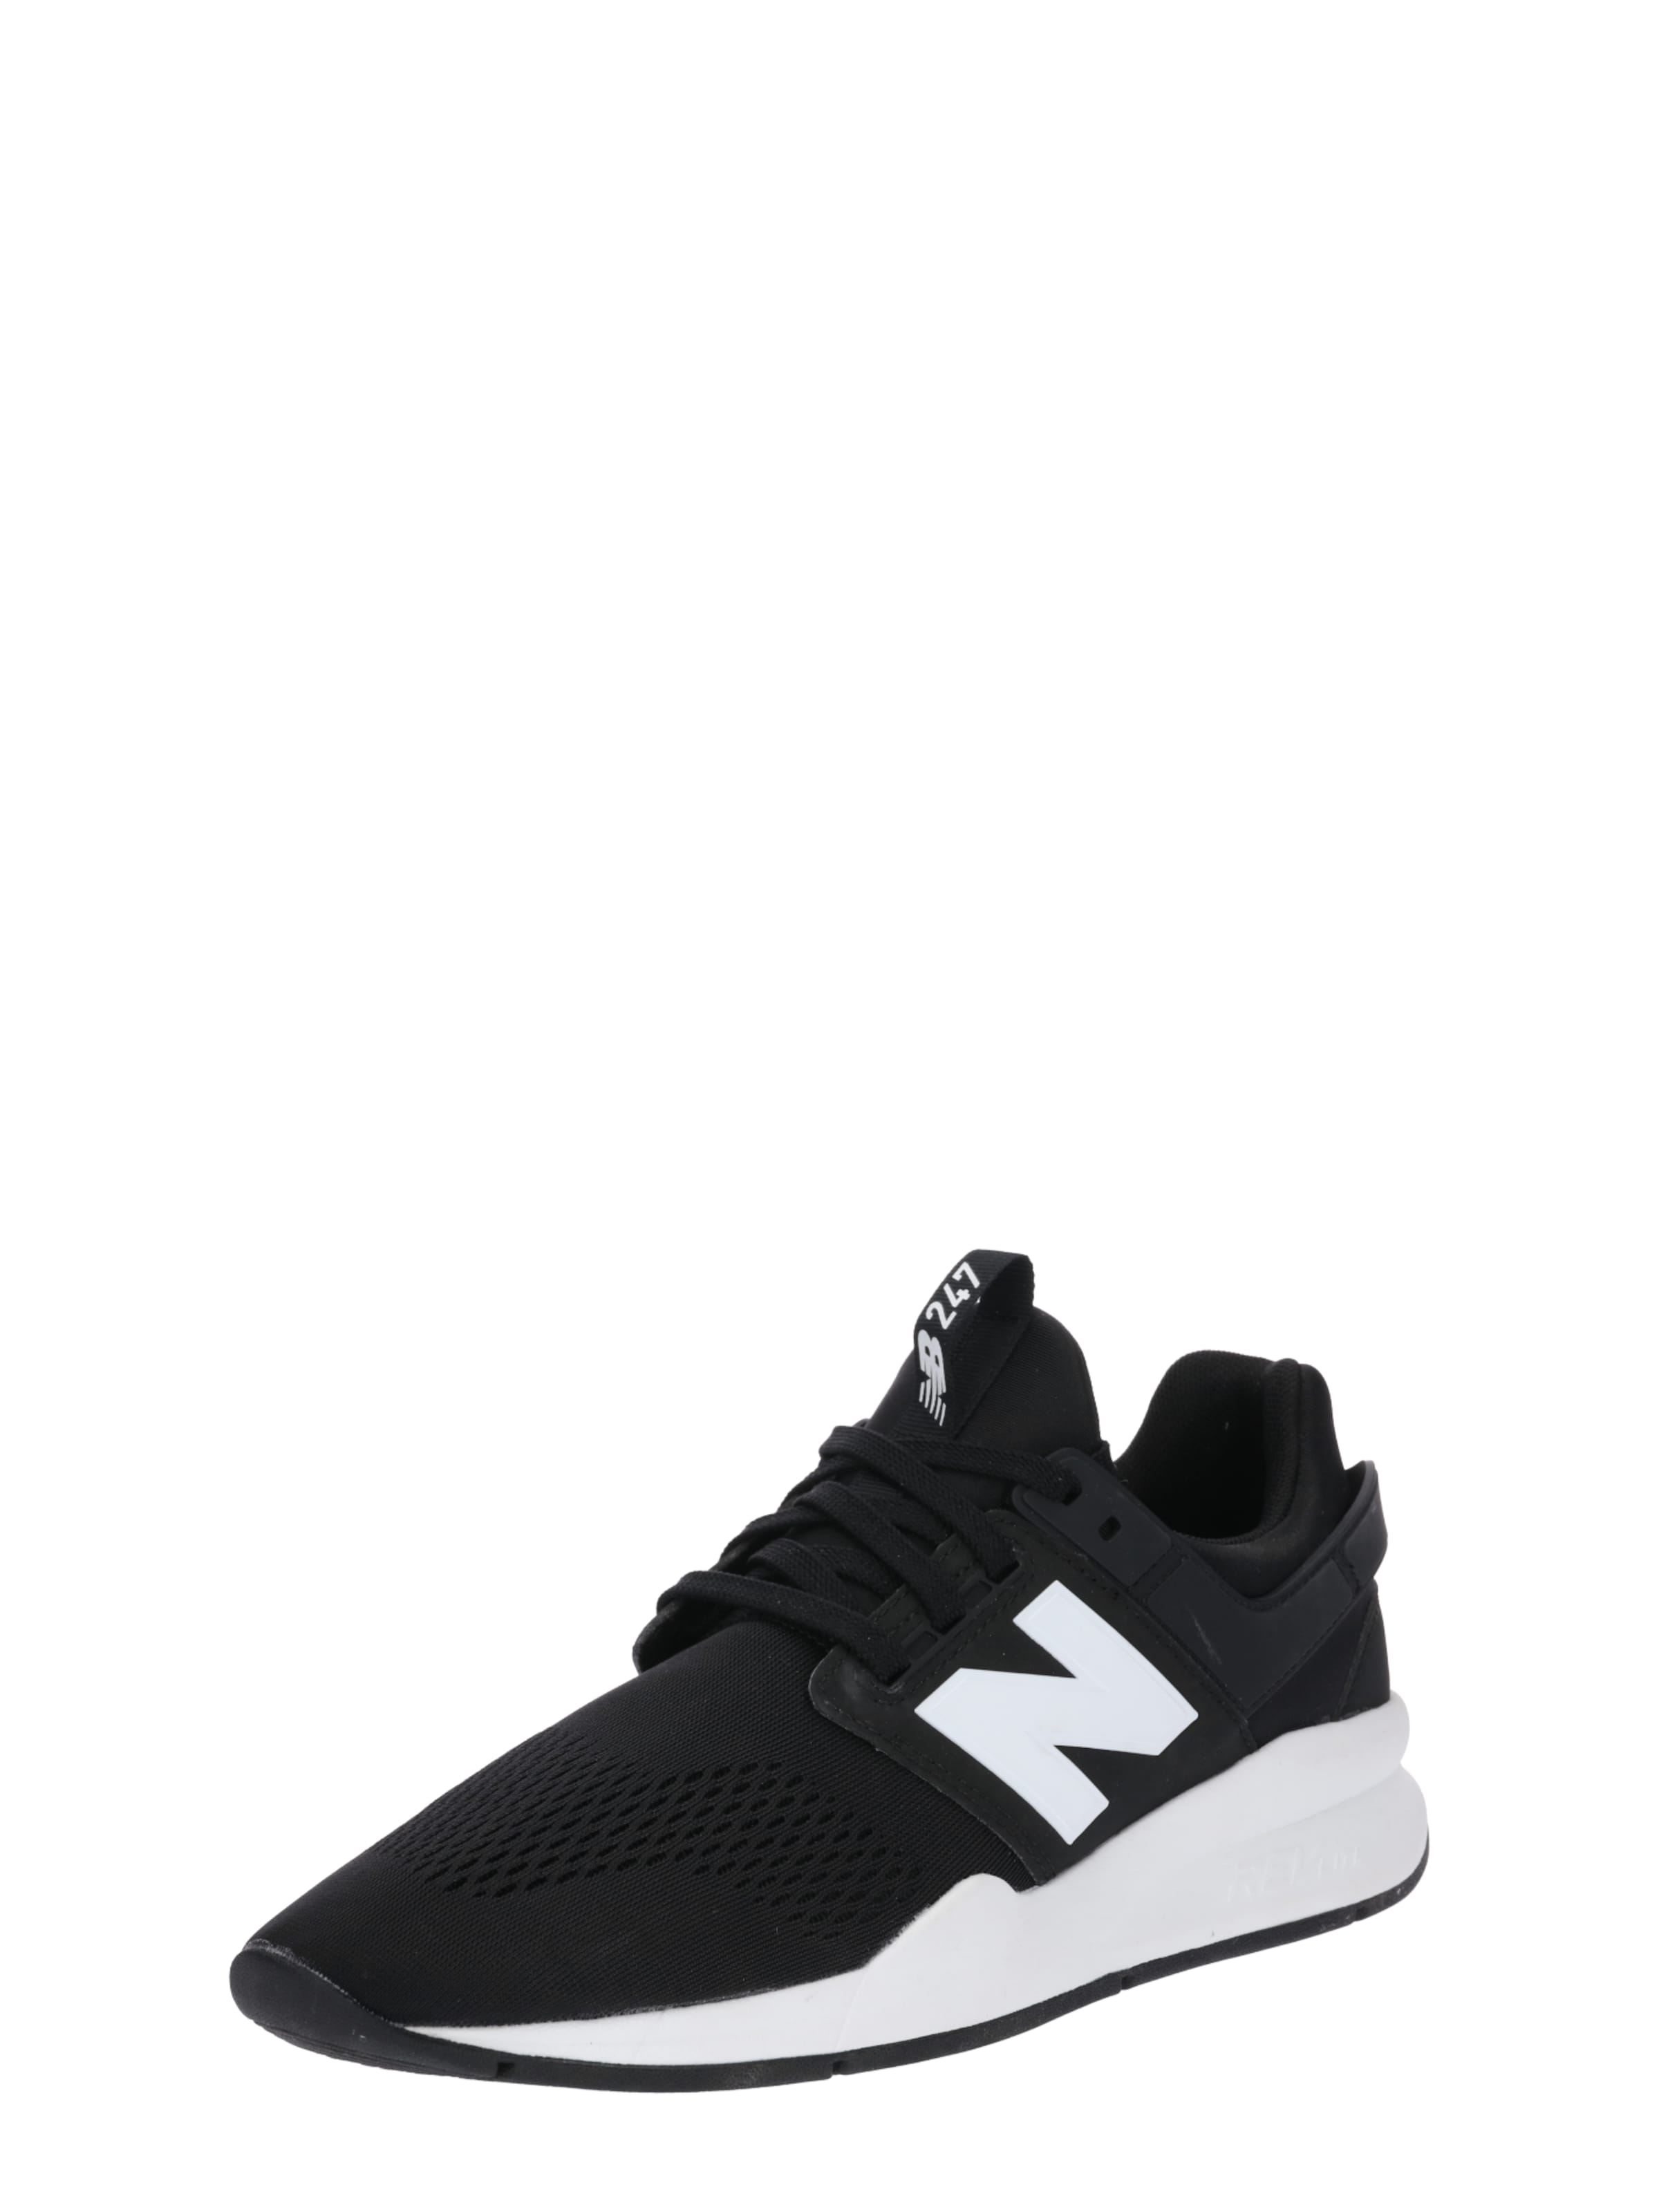 new balance Sneaker Low MS247 Hohe Qualität